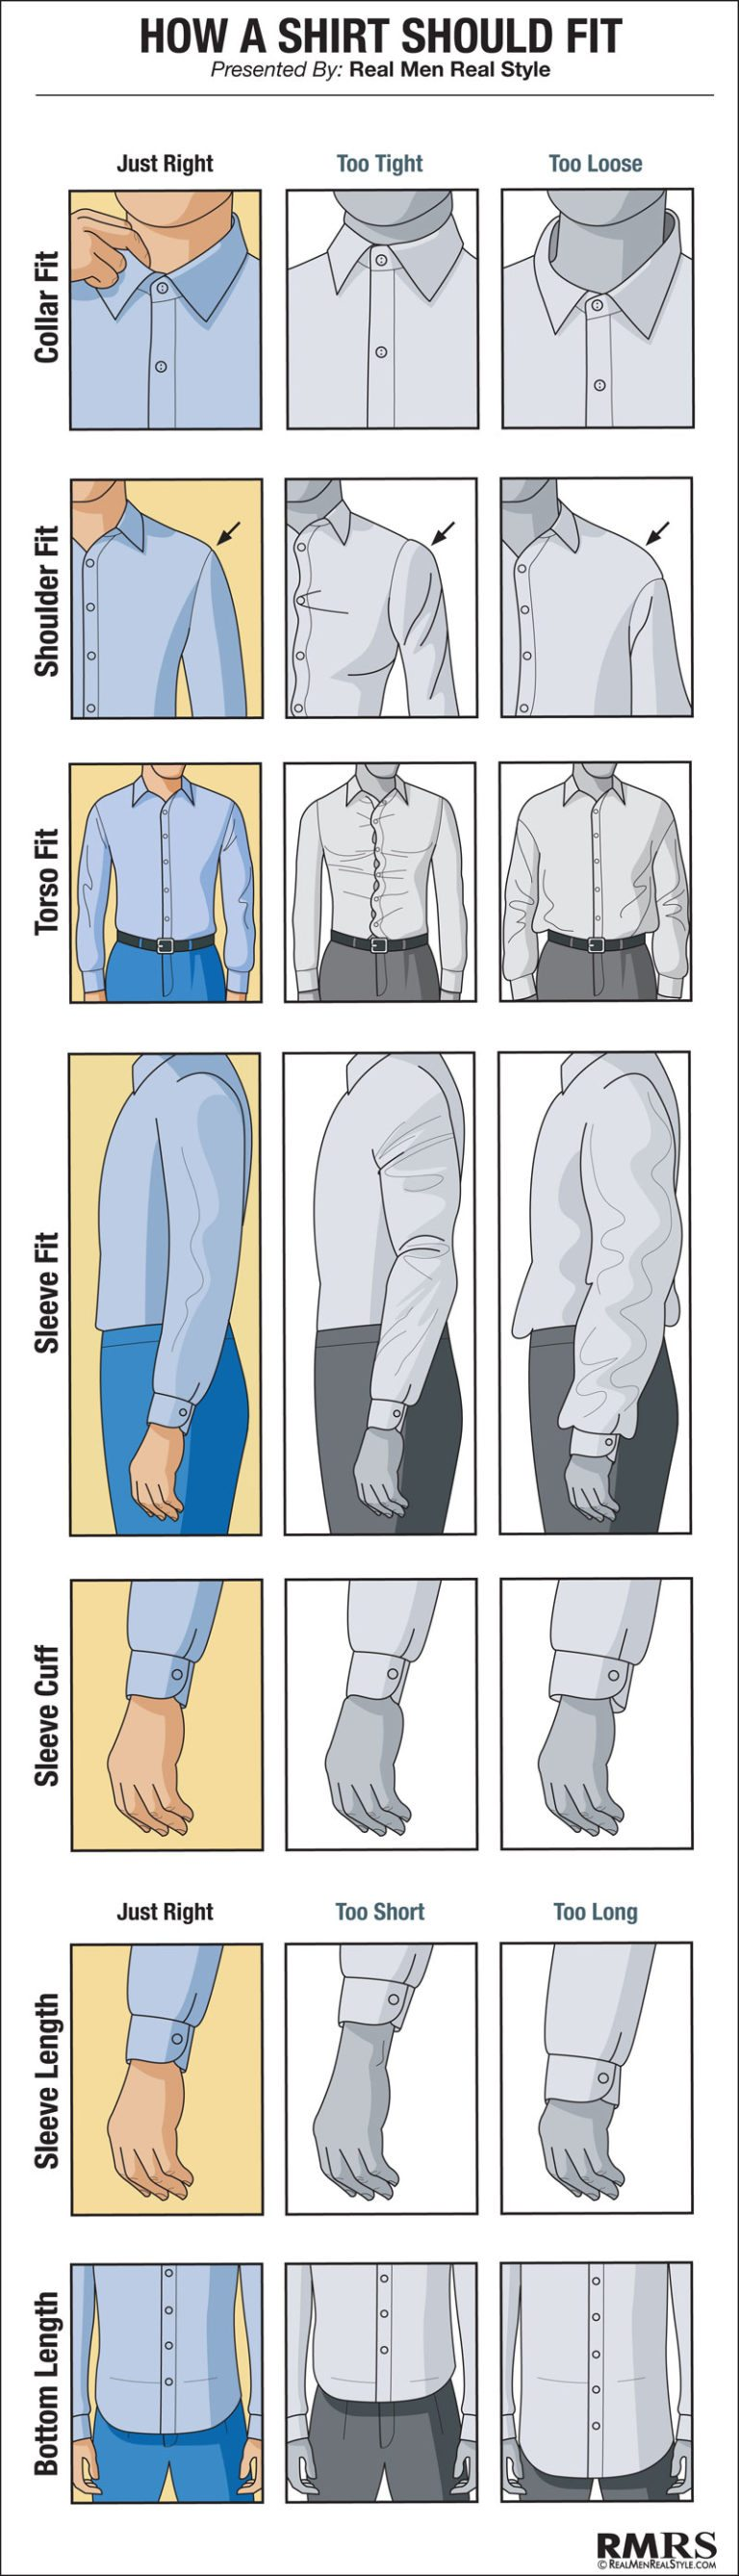 How to choose and wear a dress shirt, How to wear a right dress shirt, COLLAR, SHOULDER, WAIST, ARM, HANDLE, MANGA LENGTH, How A Dress Shirt Should Fit Infographic – Men's Proper Fitting Dress Shirts, how a shirt should fit, how to wear a shirt, How To Wear A Right Dress Shirt - Teaching Men's Lifestyle, When worn well, the dress shirt can make any man more stylish.  Check out these tips., Clothes,Clothing,Fashion,Fashion Advice,How To Dress Better,Look,Male Fashion Tips,Men's Fashion & Style,Mistakes To Avoid,Personal Care,Style,Style Tips,Trending,Tips,Well Dressed,Dress Shirt,Image Source - Google | Image by - Antonio Centeno ( Real Men Real Style)